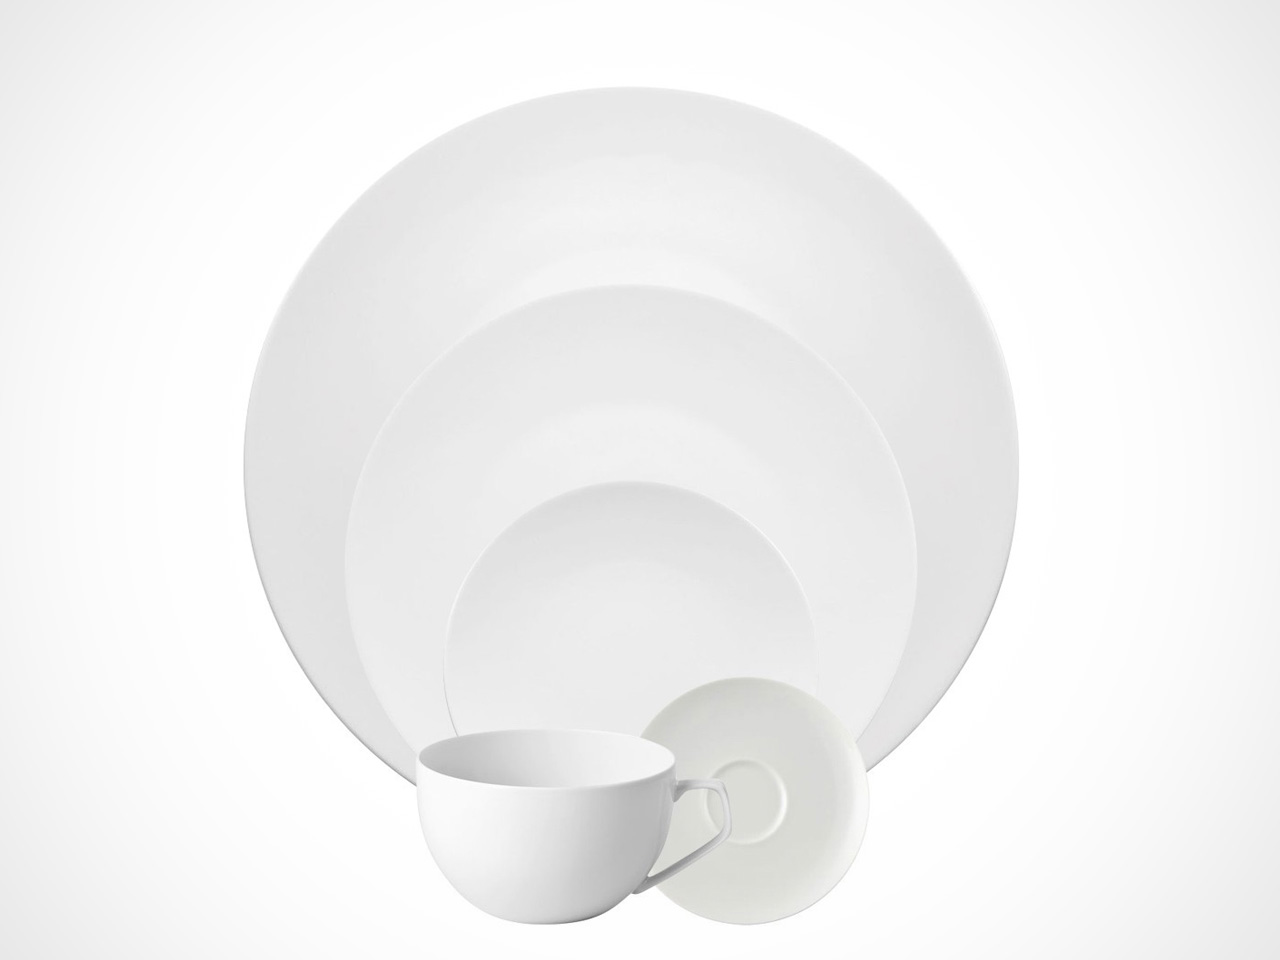 Rosenthal TAC 02 White 5 piece place setting on white background.